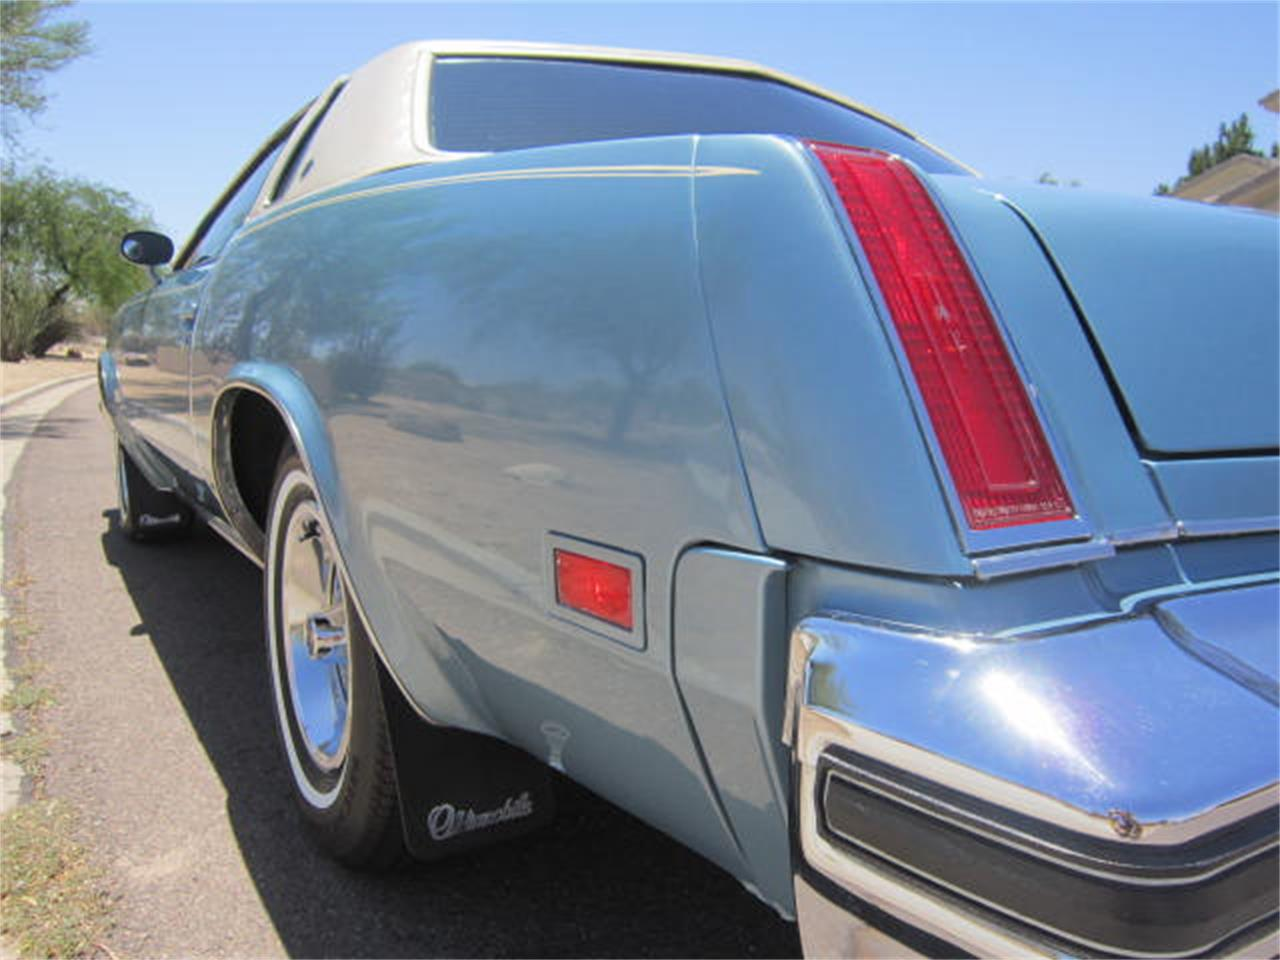 Large Picture of '77 Oldsmobile Cutlass located in Glendale Arizona - $15,000.00 Offered by a Private Seller - DISY